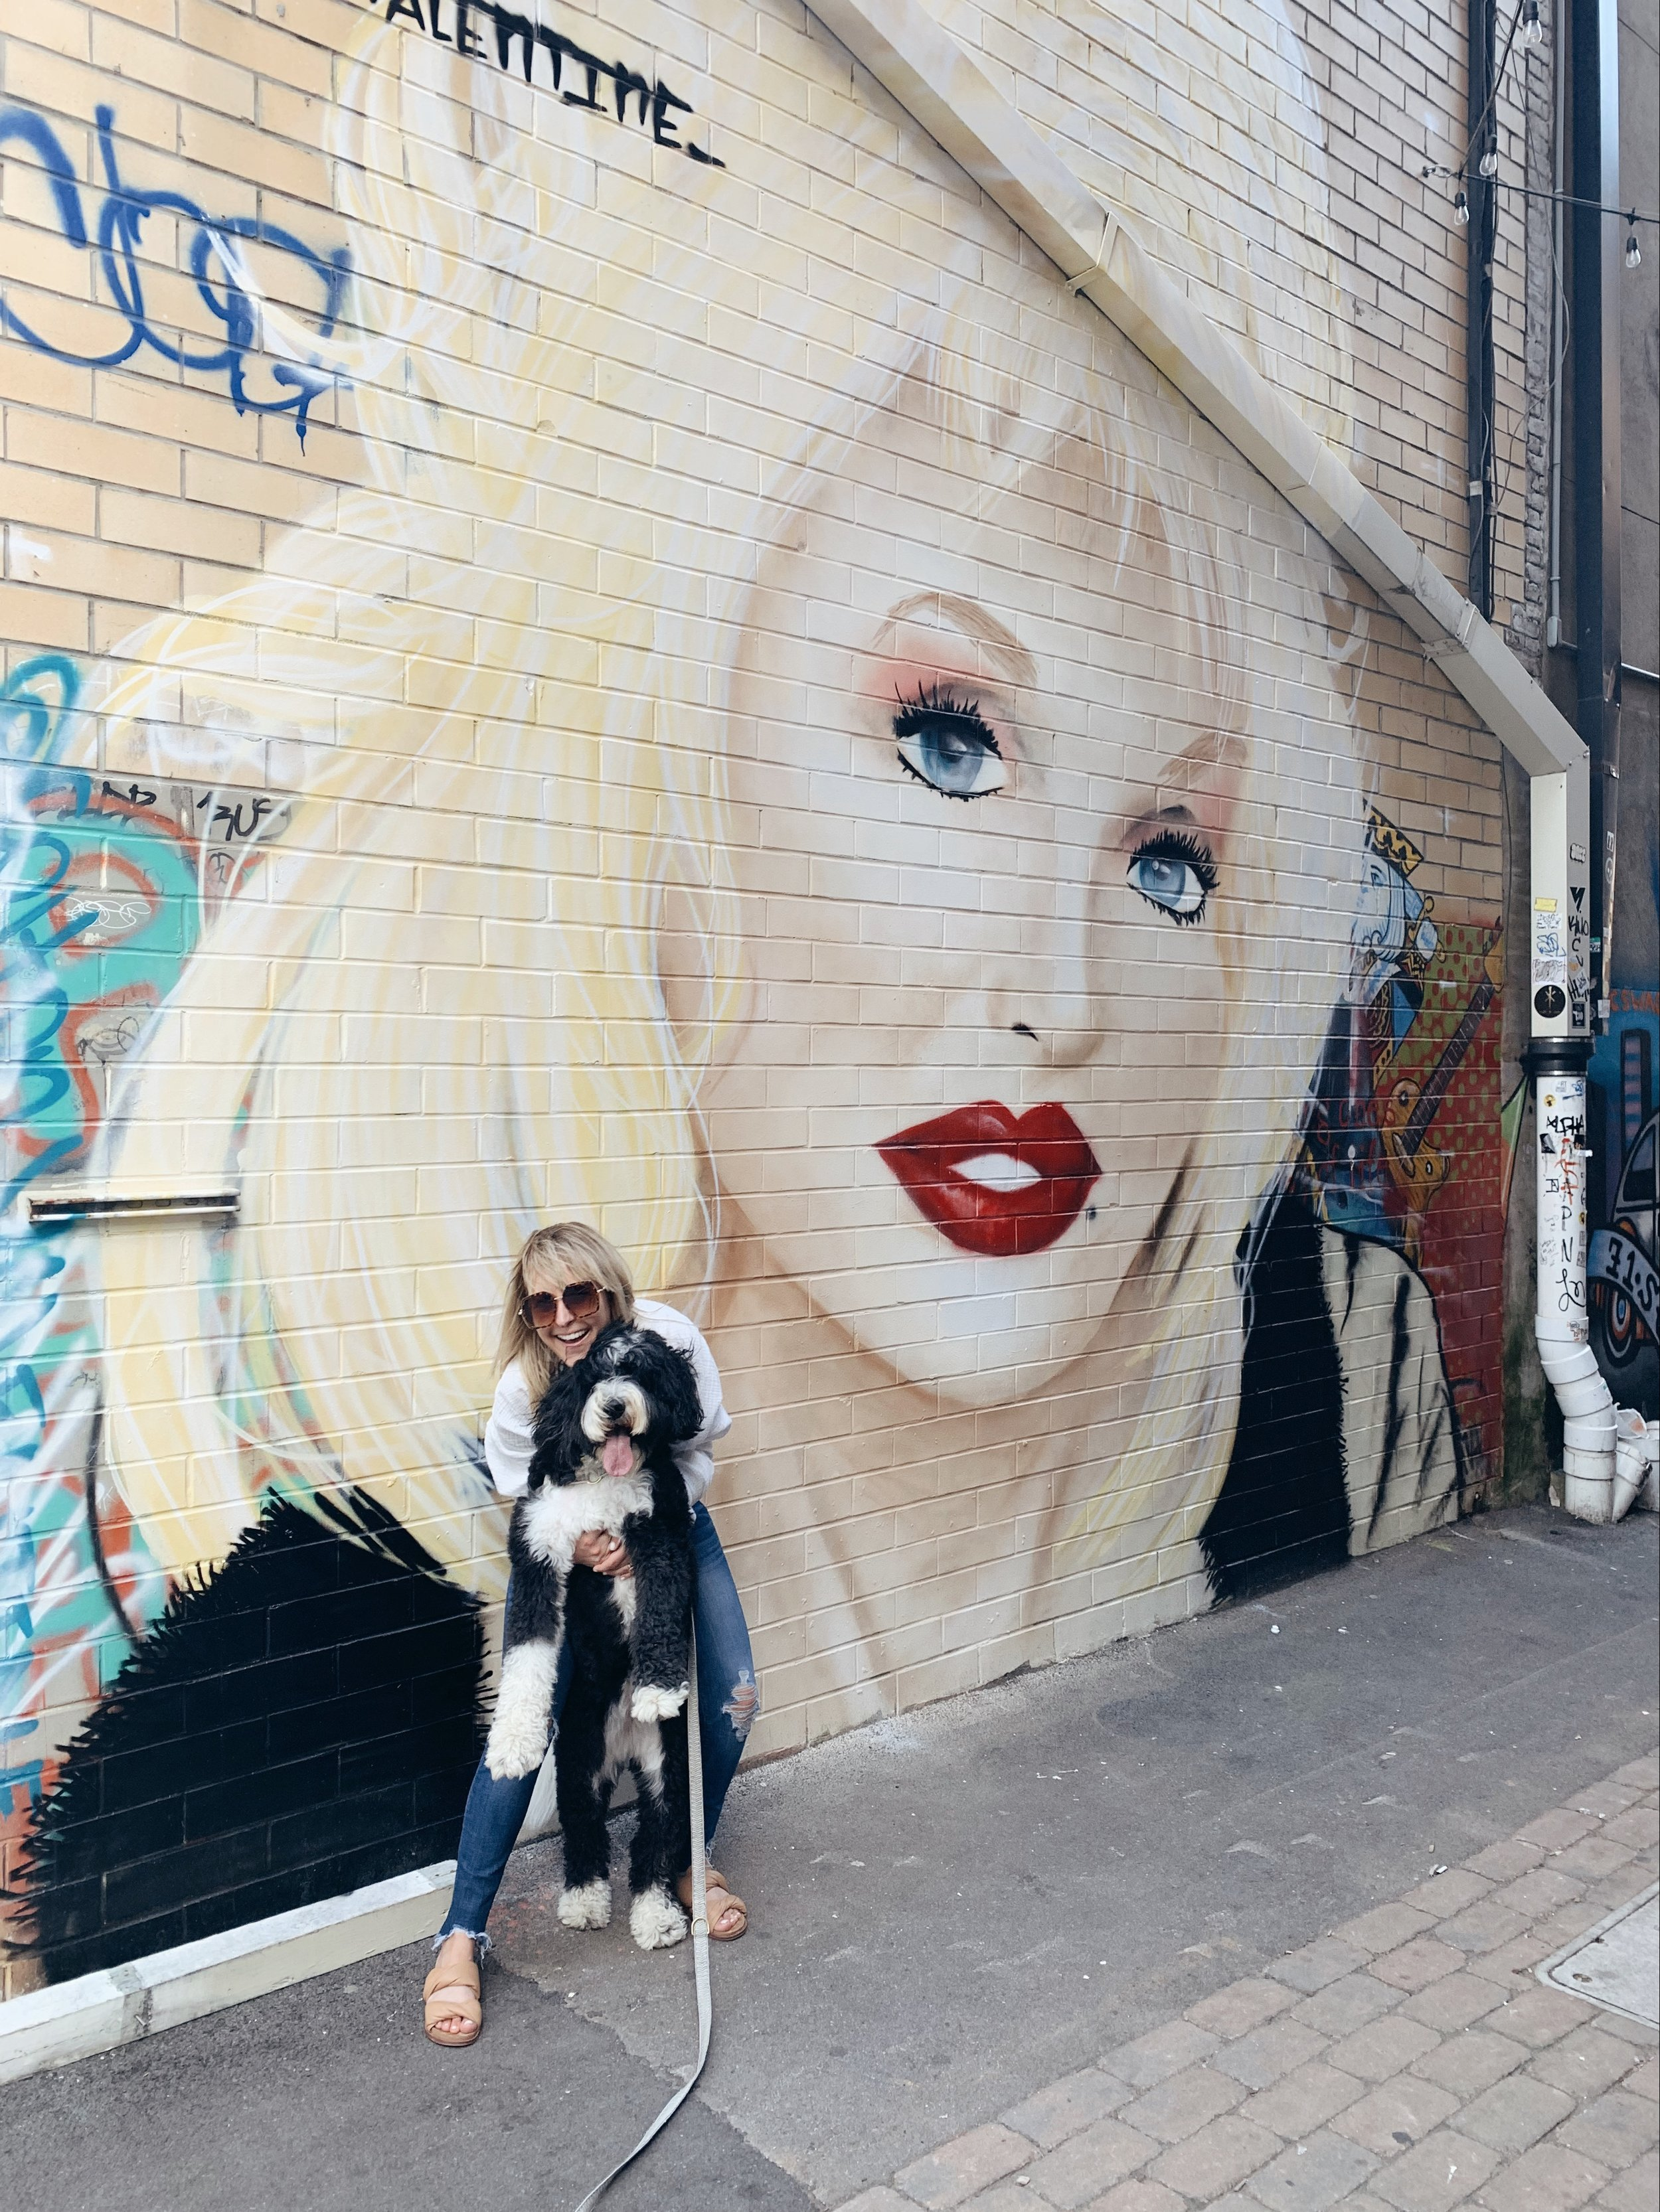 Dolly Parton is one of the first to greet you as you stroll into Strong Alley